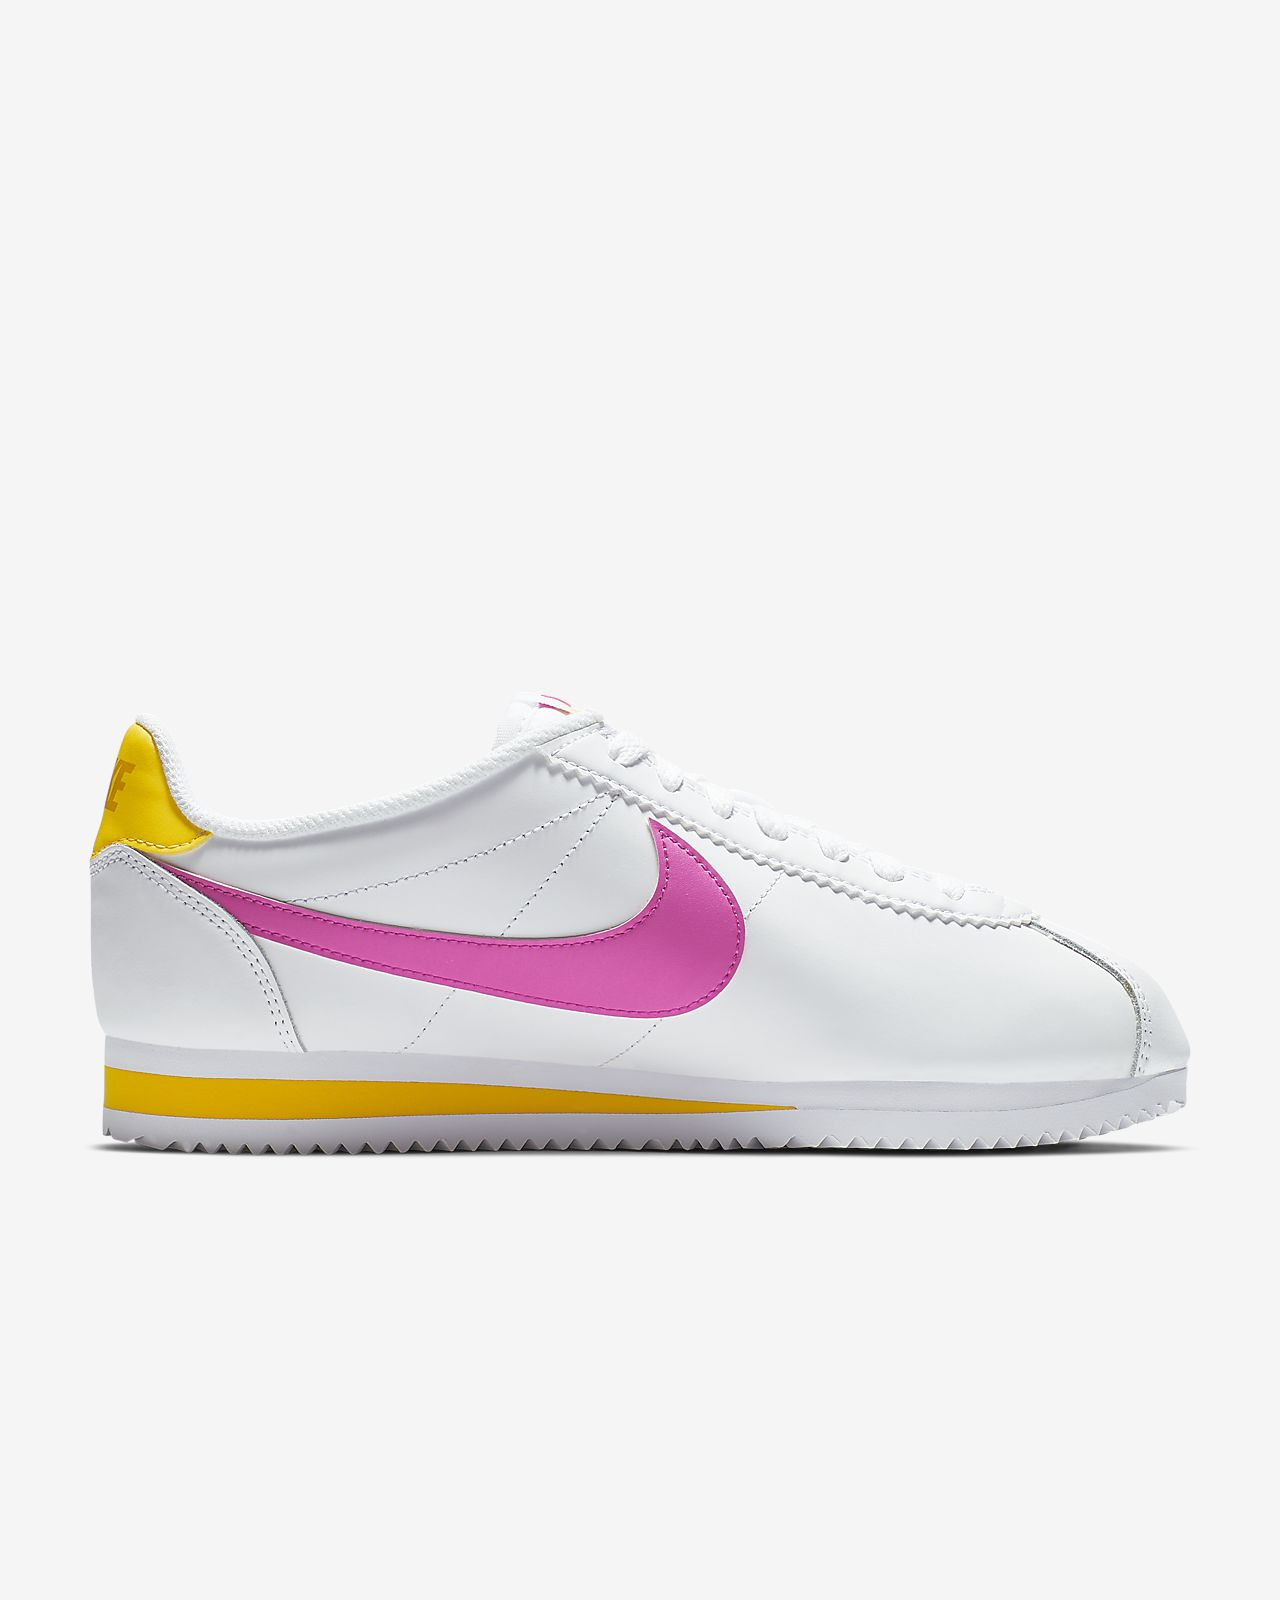 free shipping 1bcf6 ba040 ... Chaussure Nike Classic Cortez pour Femme